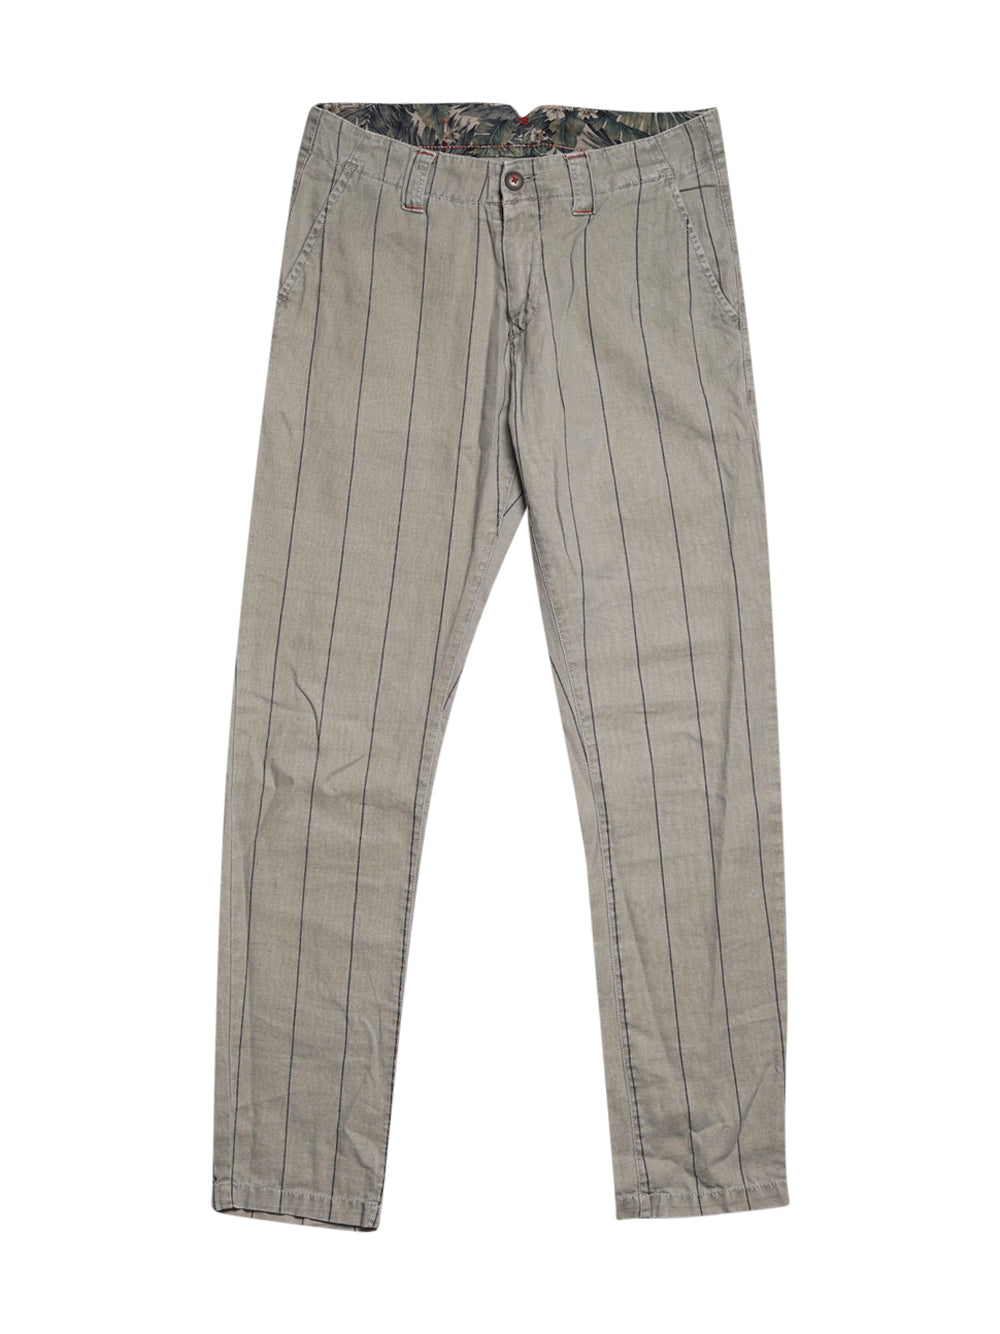 Front photo of Preloved Baker's Grey Man's trousers - size 36/S